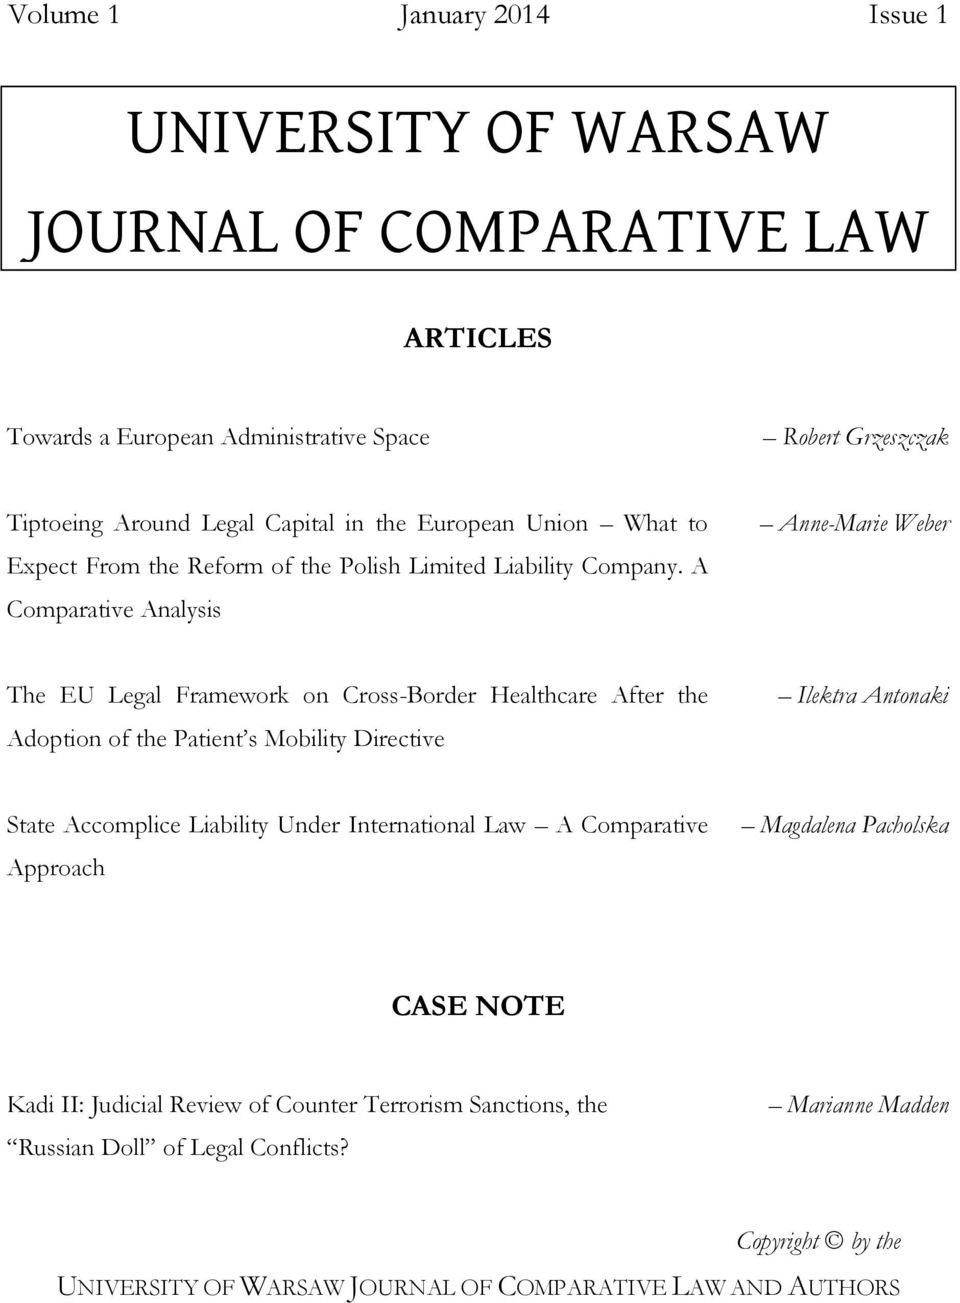 A Comparative Analysis AnneMarie Weber The EU Legal Framework on Cross-Border Healthcare After the Adoption of the Patient s Mobility Directive Ilektra Antonaki